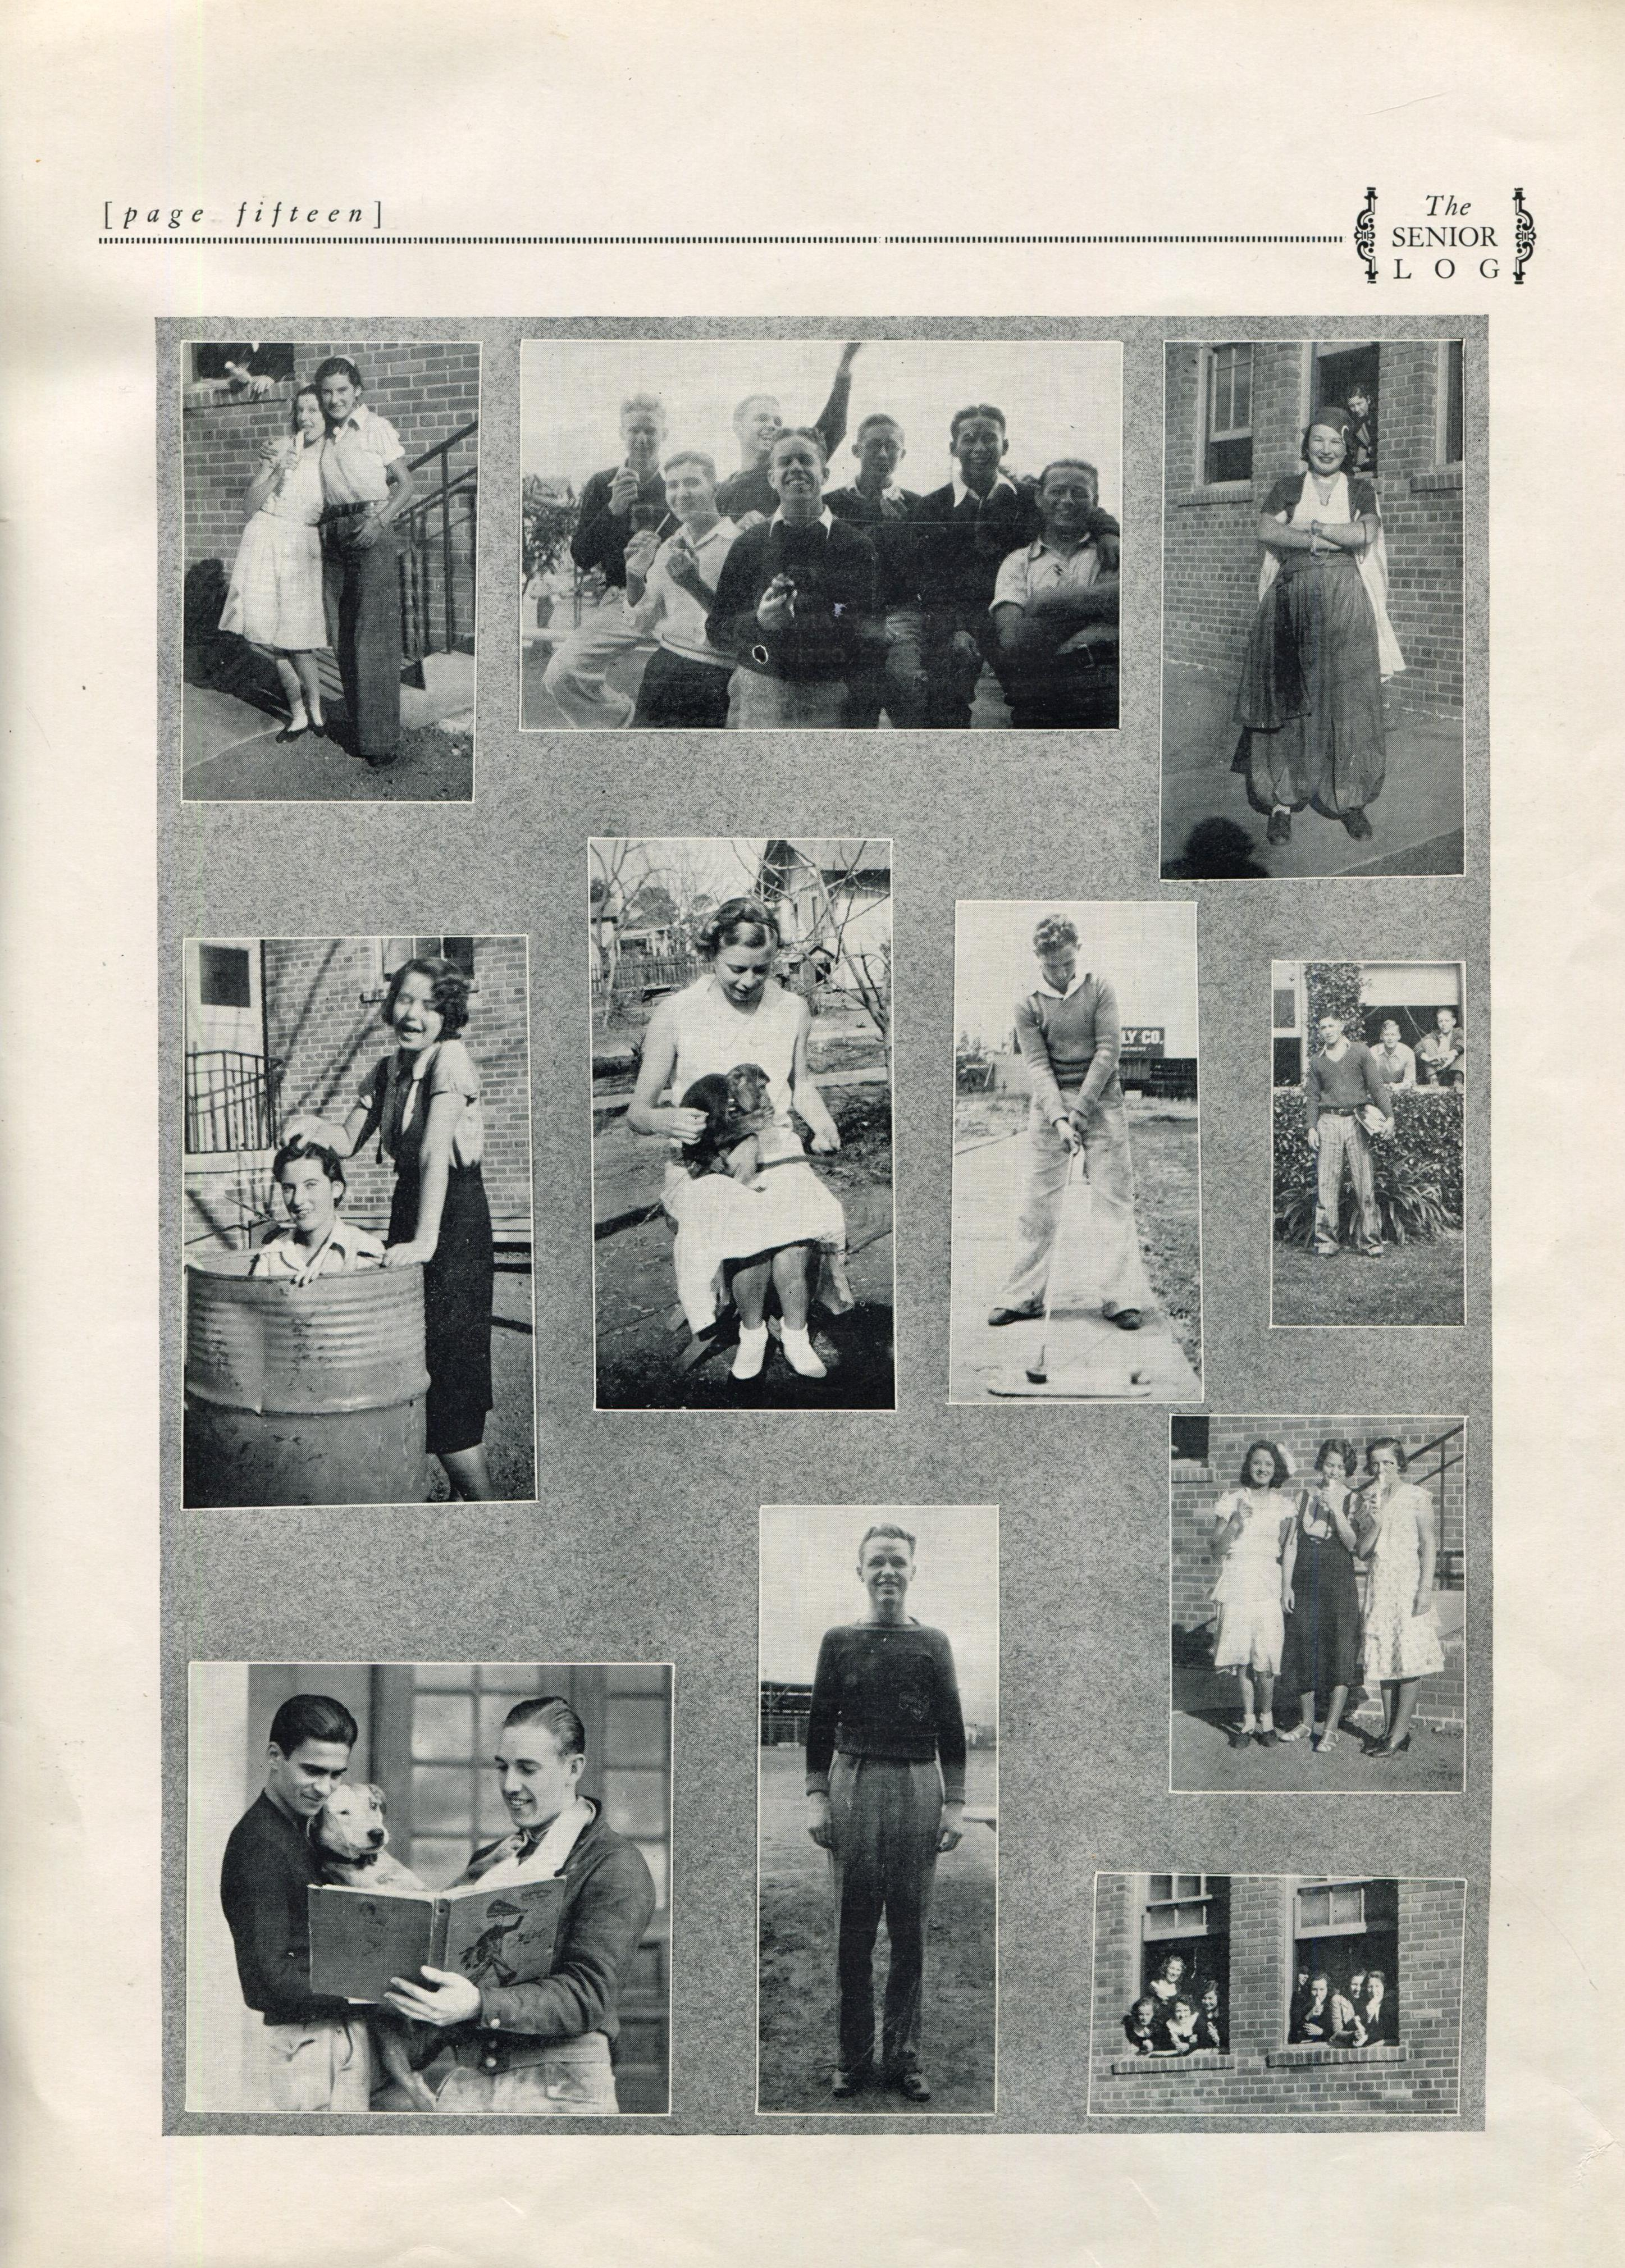 A page from 1933